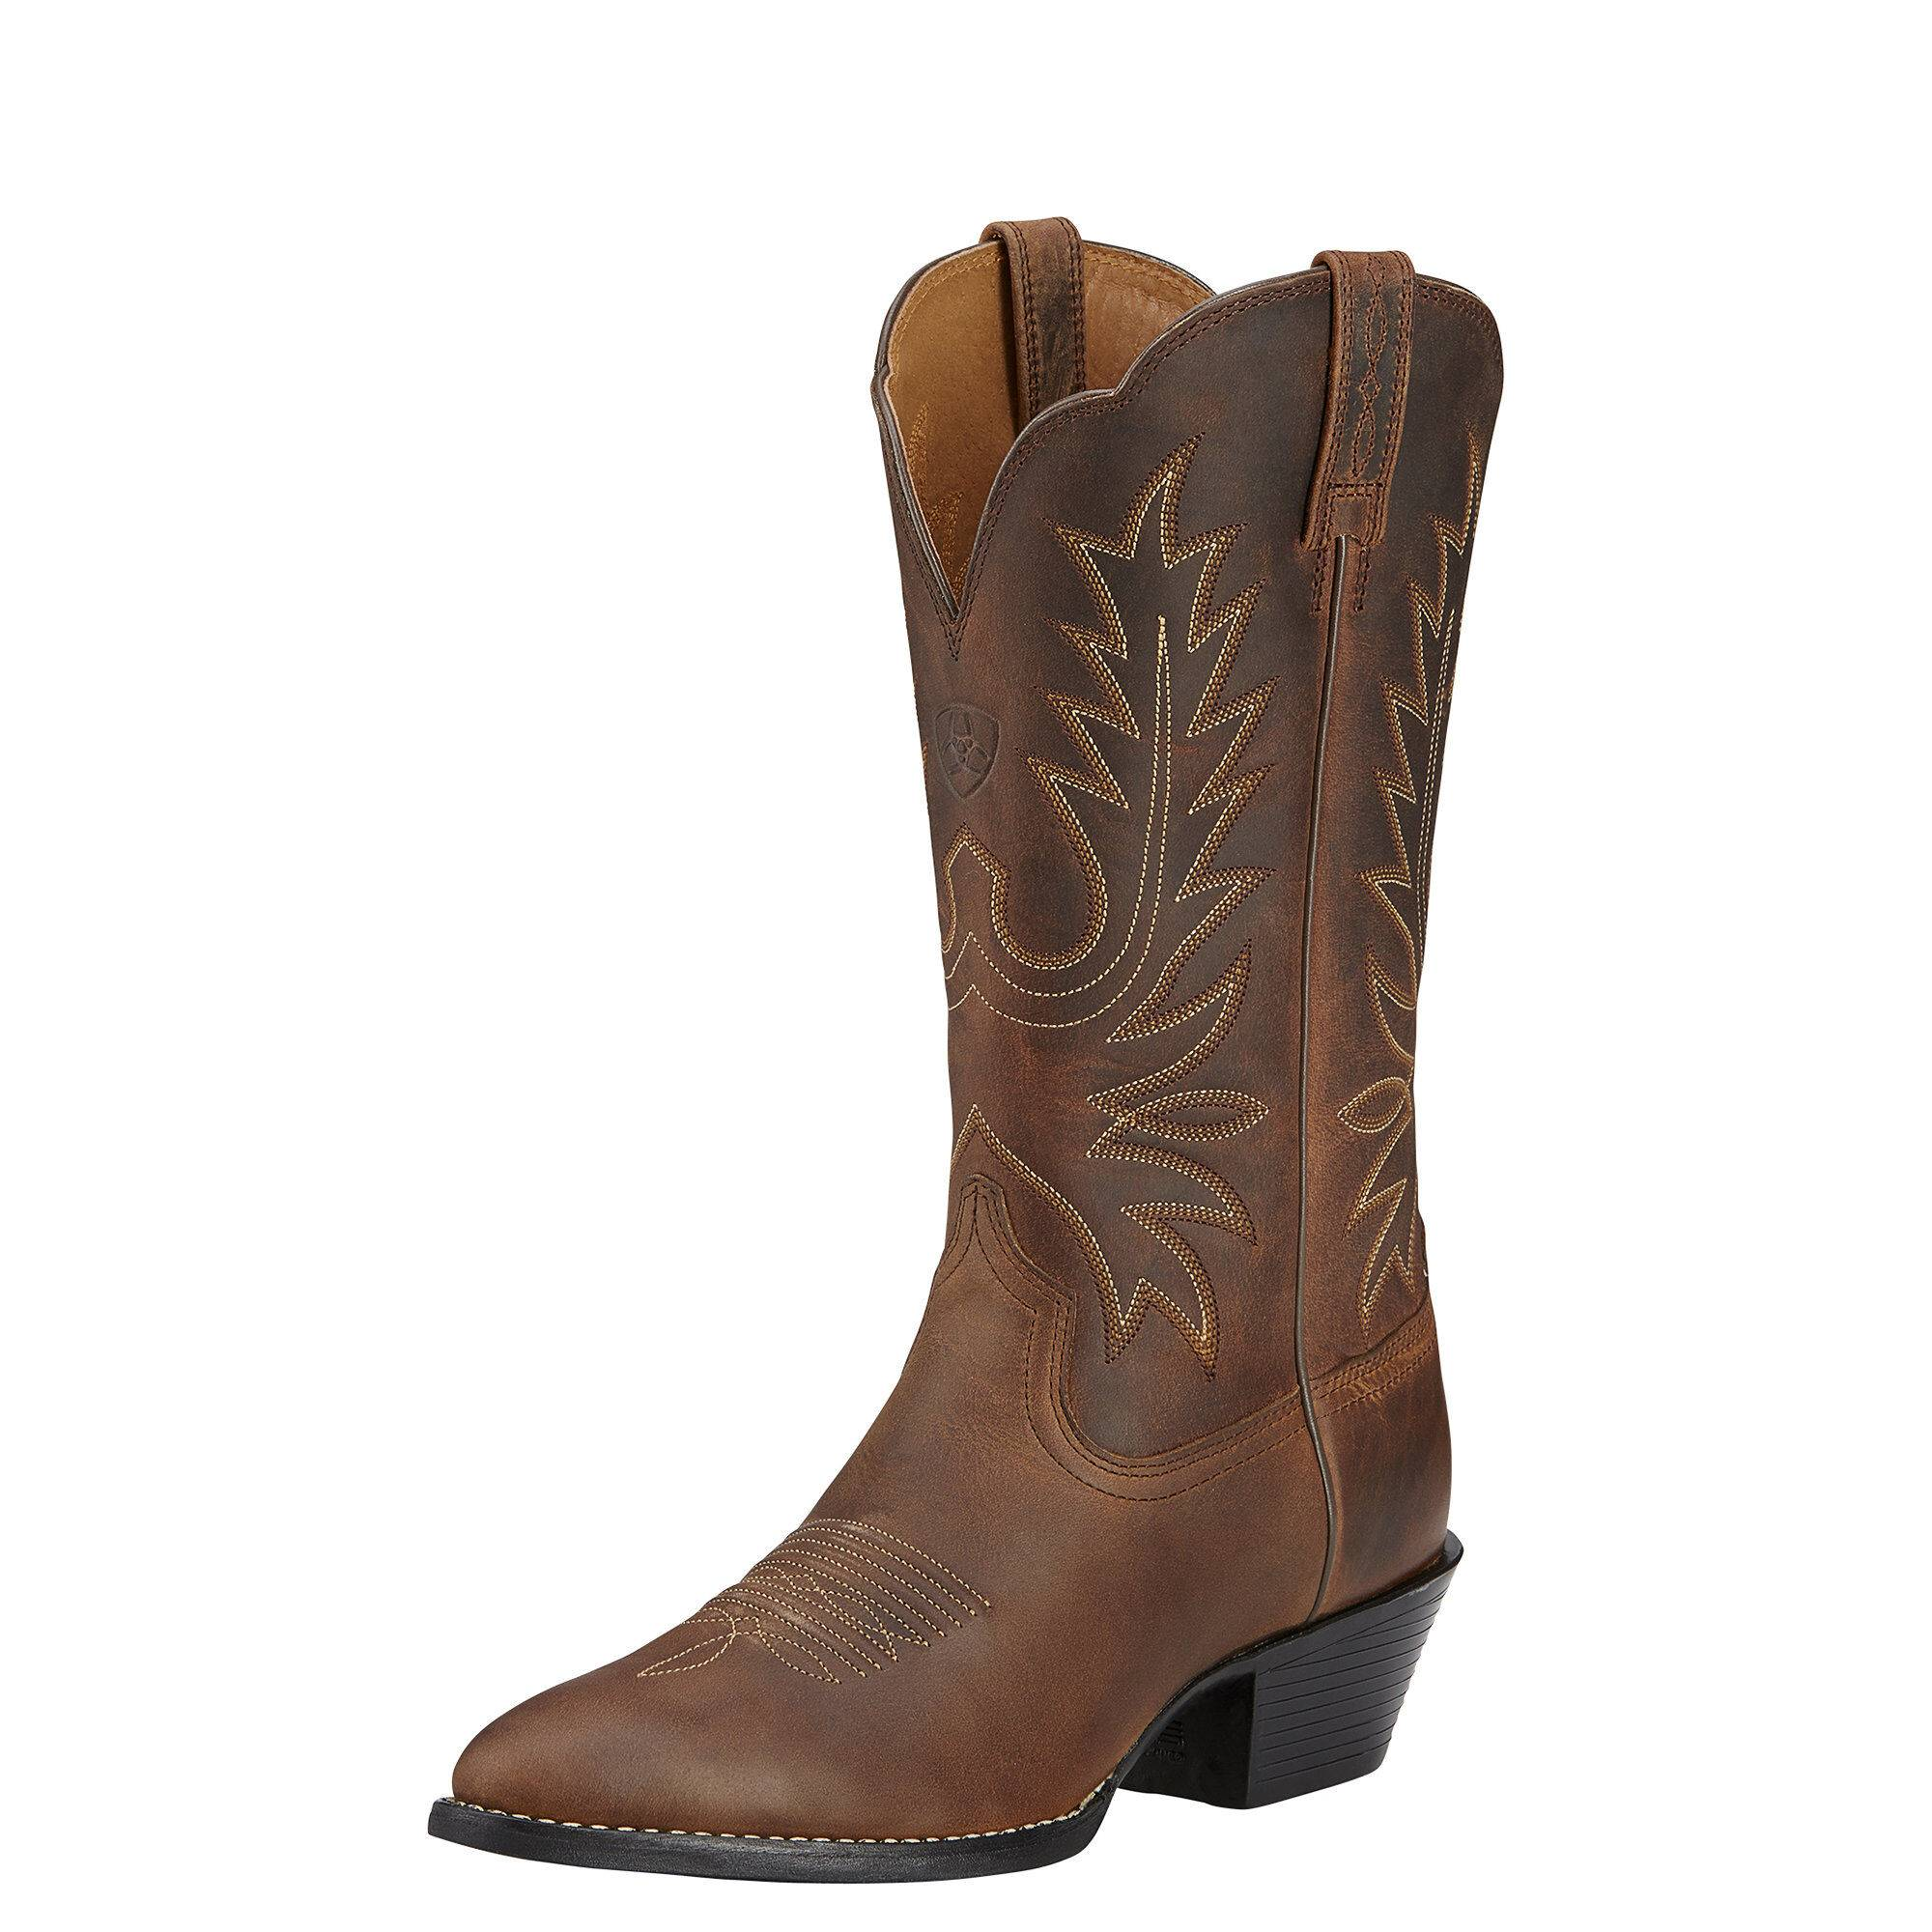 Ariat Women's Heritage R Toe Western Boots in Distressed Brown, Size 6.5 B / Medium by Ariat